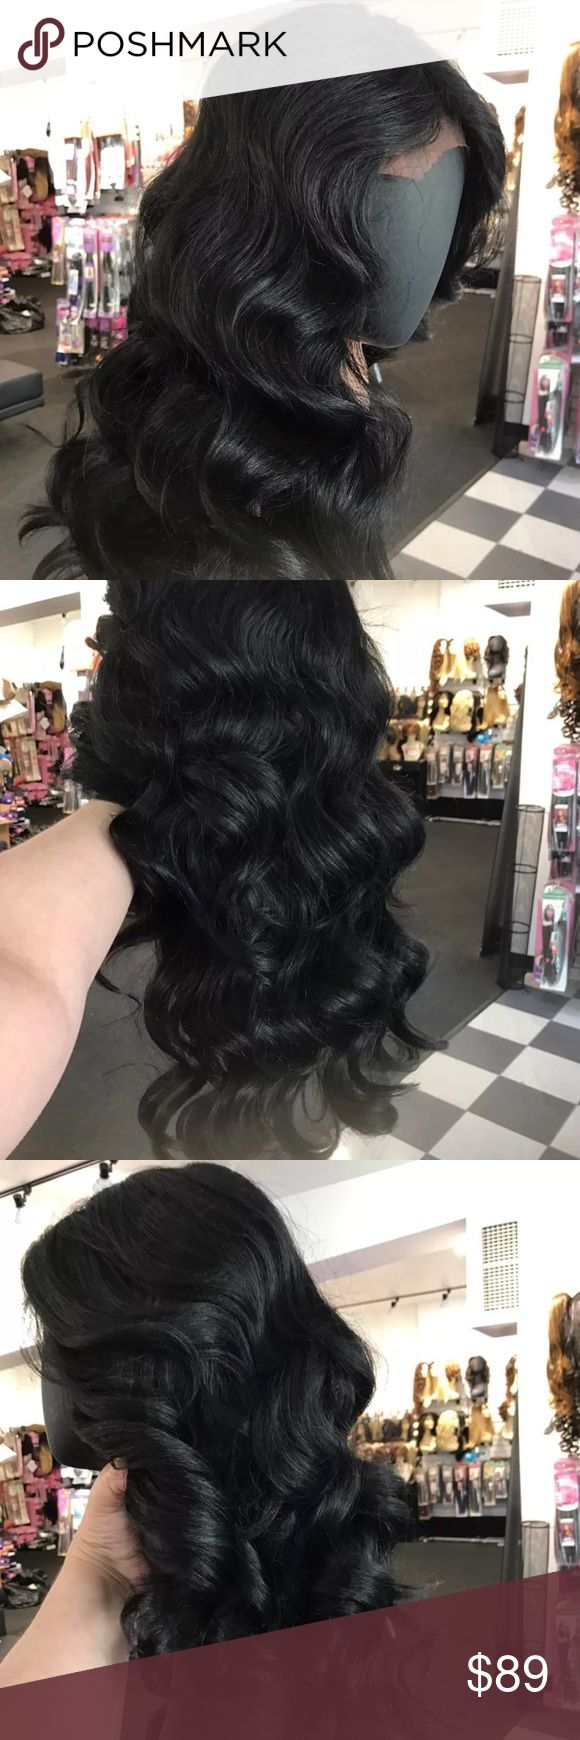 Deep Wave Long Lacefront Swisslace wig High quality Human Like Lacefront Swisslace wig combs inside heat resistant adjustable cap Wig use your styling tools up to 390 I ship ASAP check out my closet my wigs are suitable for cancer alopecia hair loss Accessories Hair Accessories